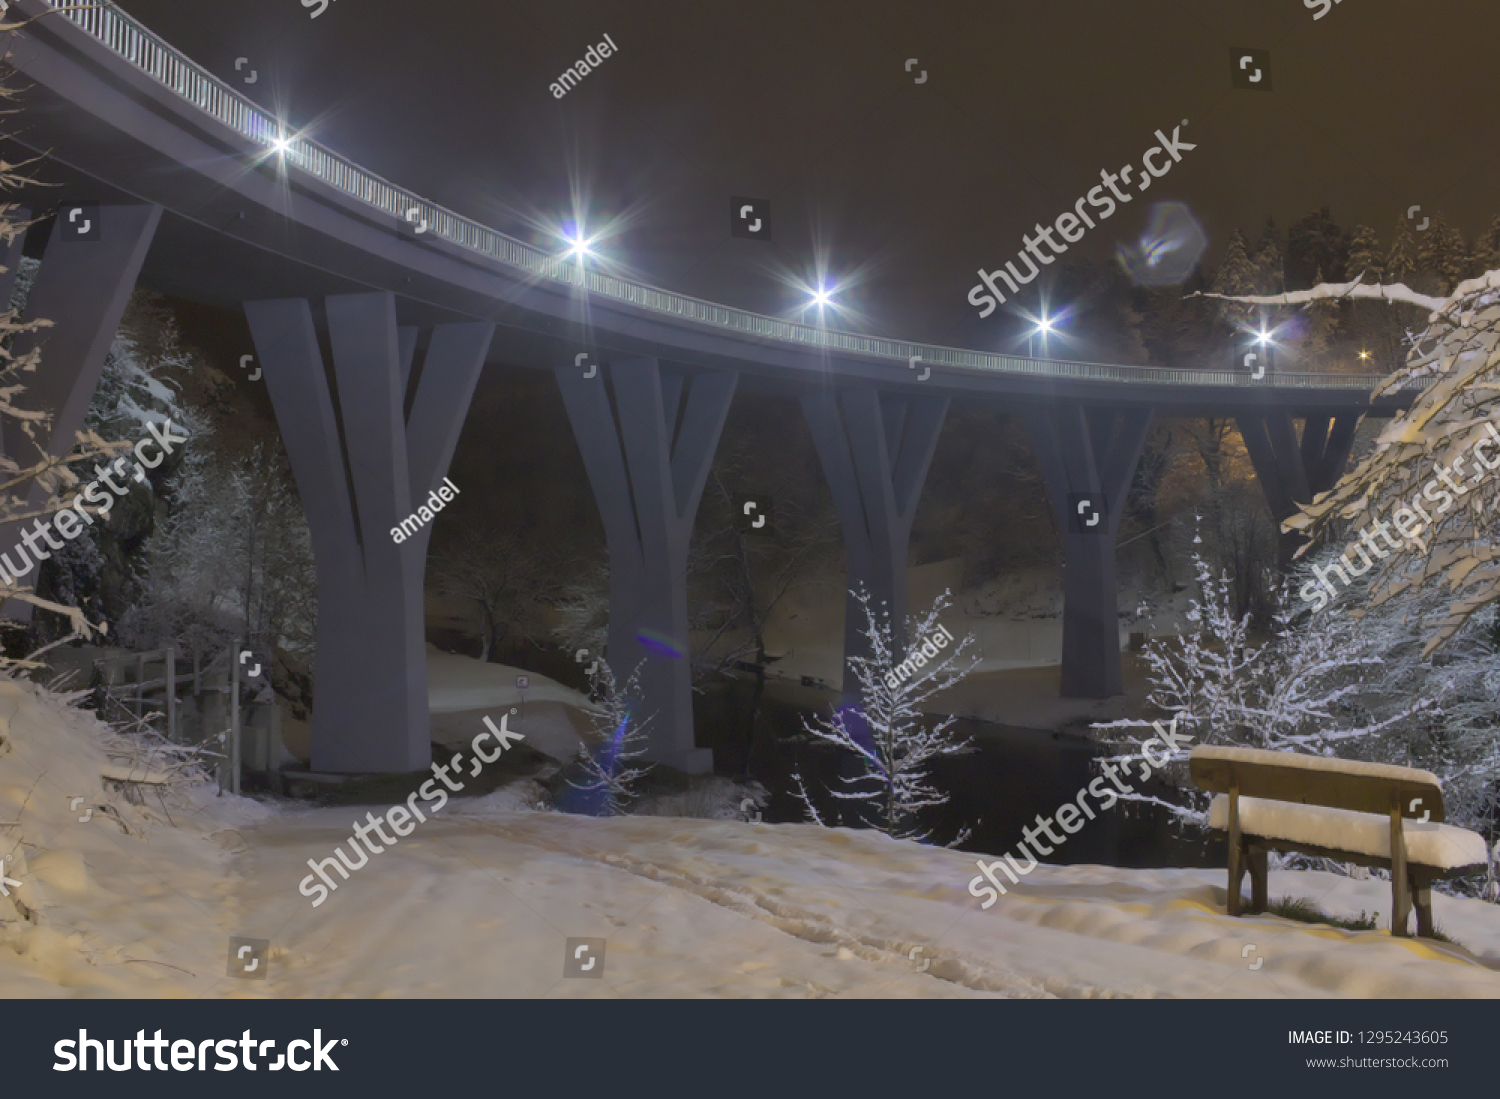 Bench covered in snow. Illuminated bridge in the background. River flowing below the bridge. Snow landscape.